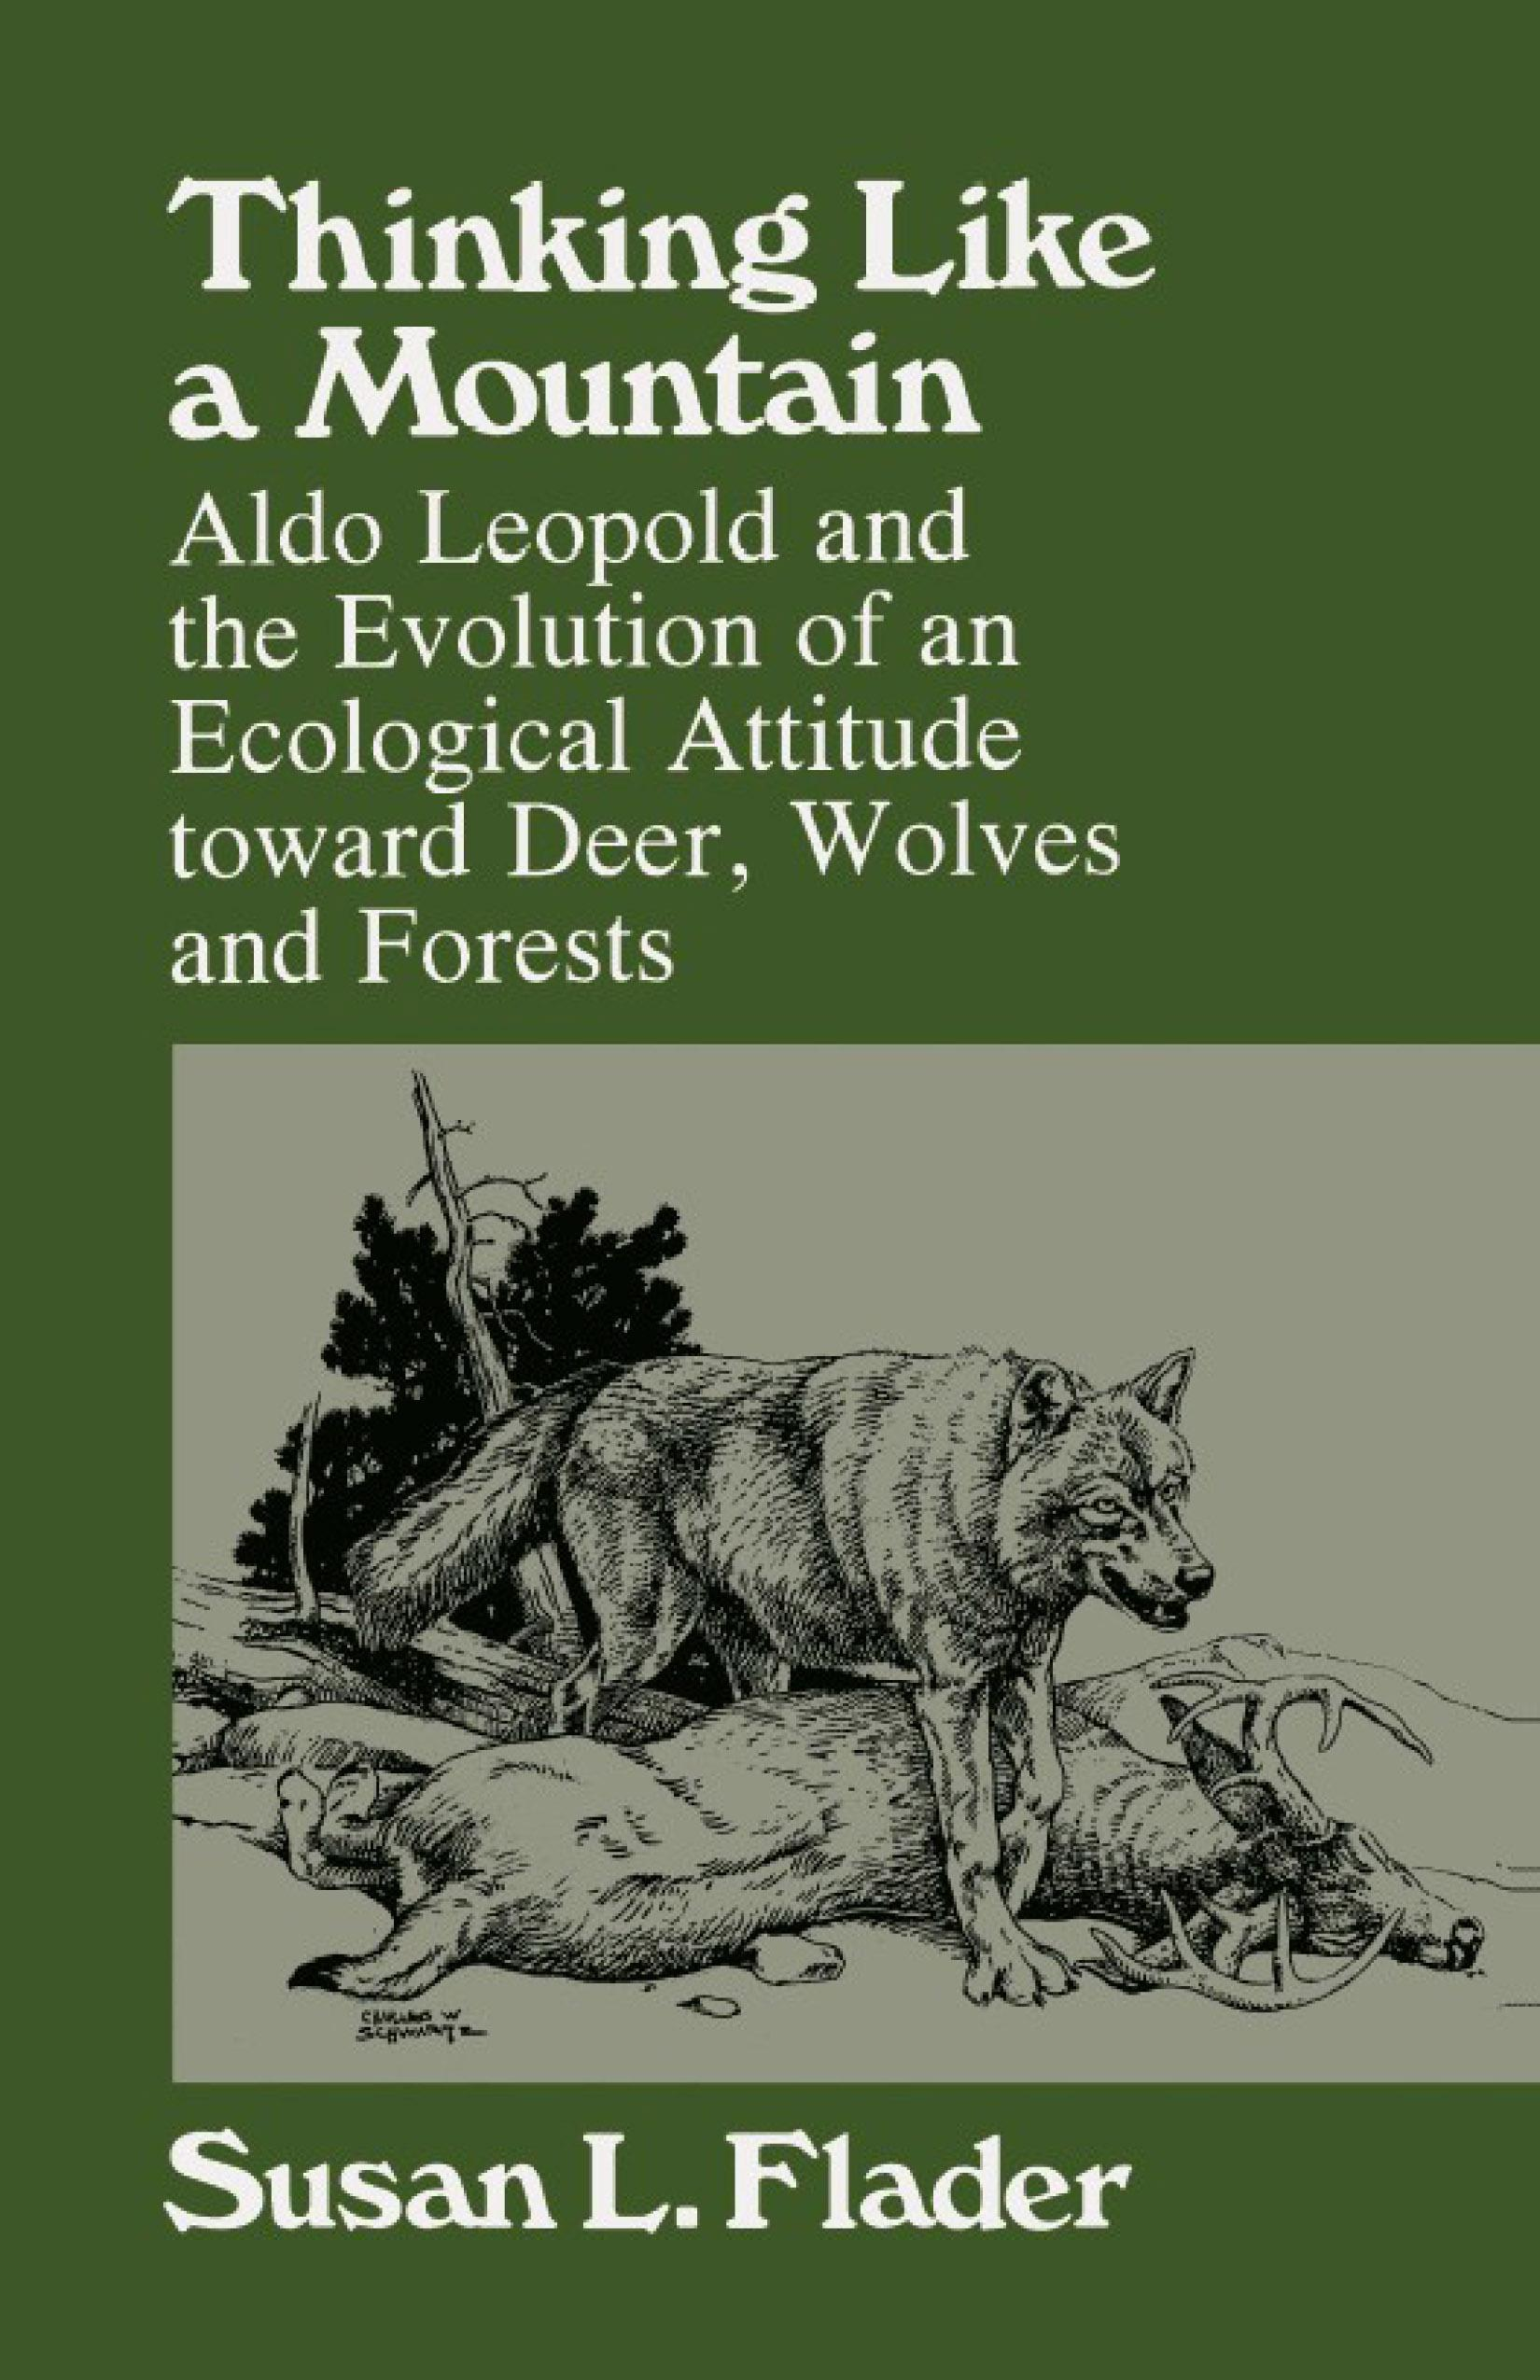 Thinking Like a Mountain: Aldo Leopold and the Evolution of an Ecological Attitude toward Deer, Wolves, and Forests EB9780299145033